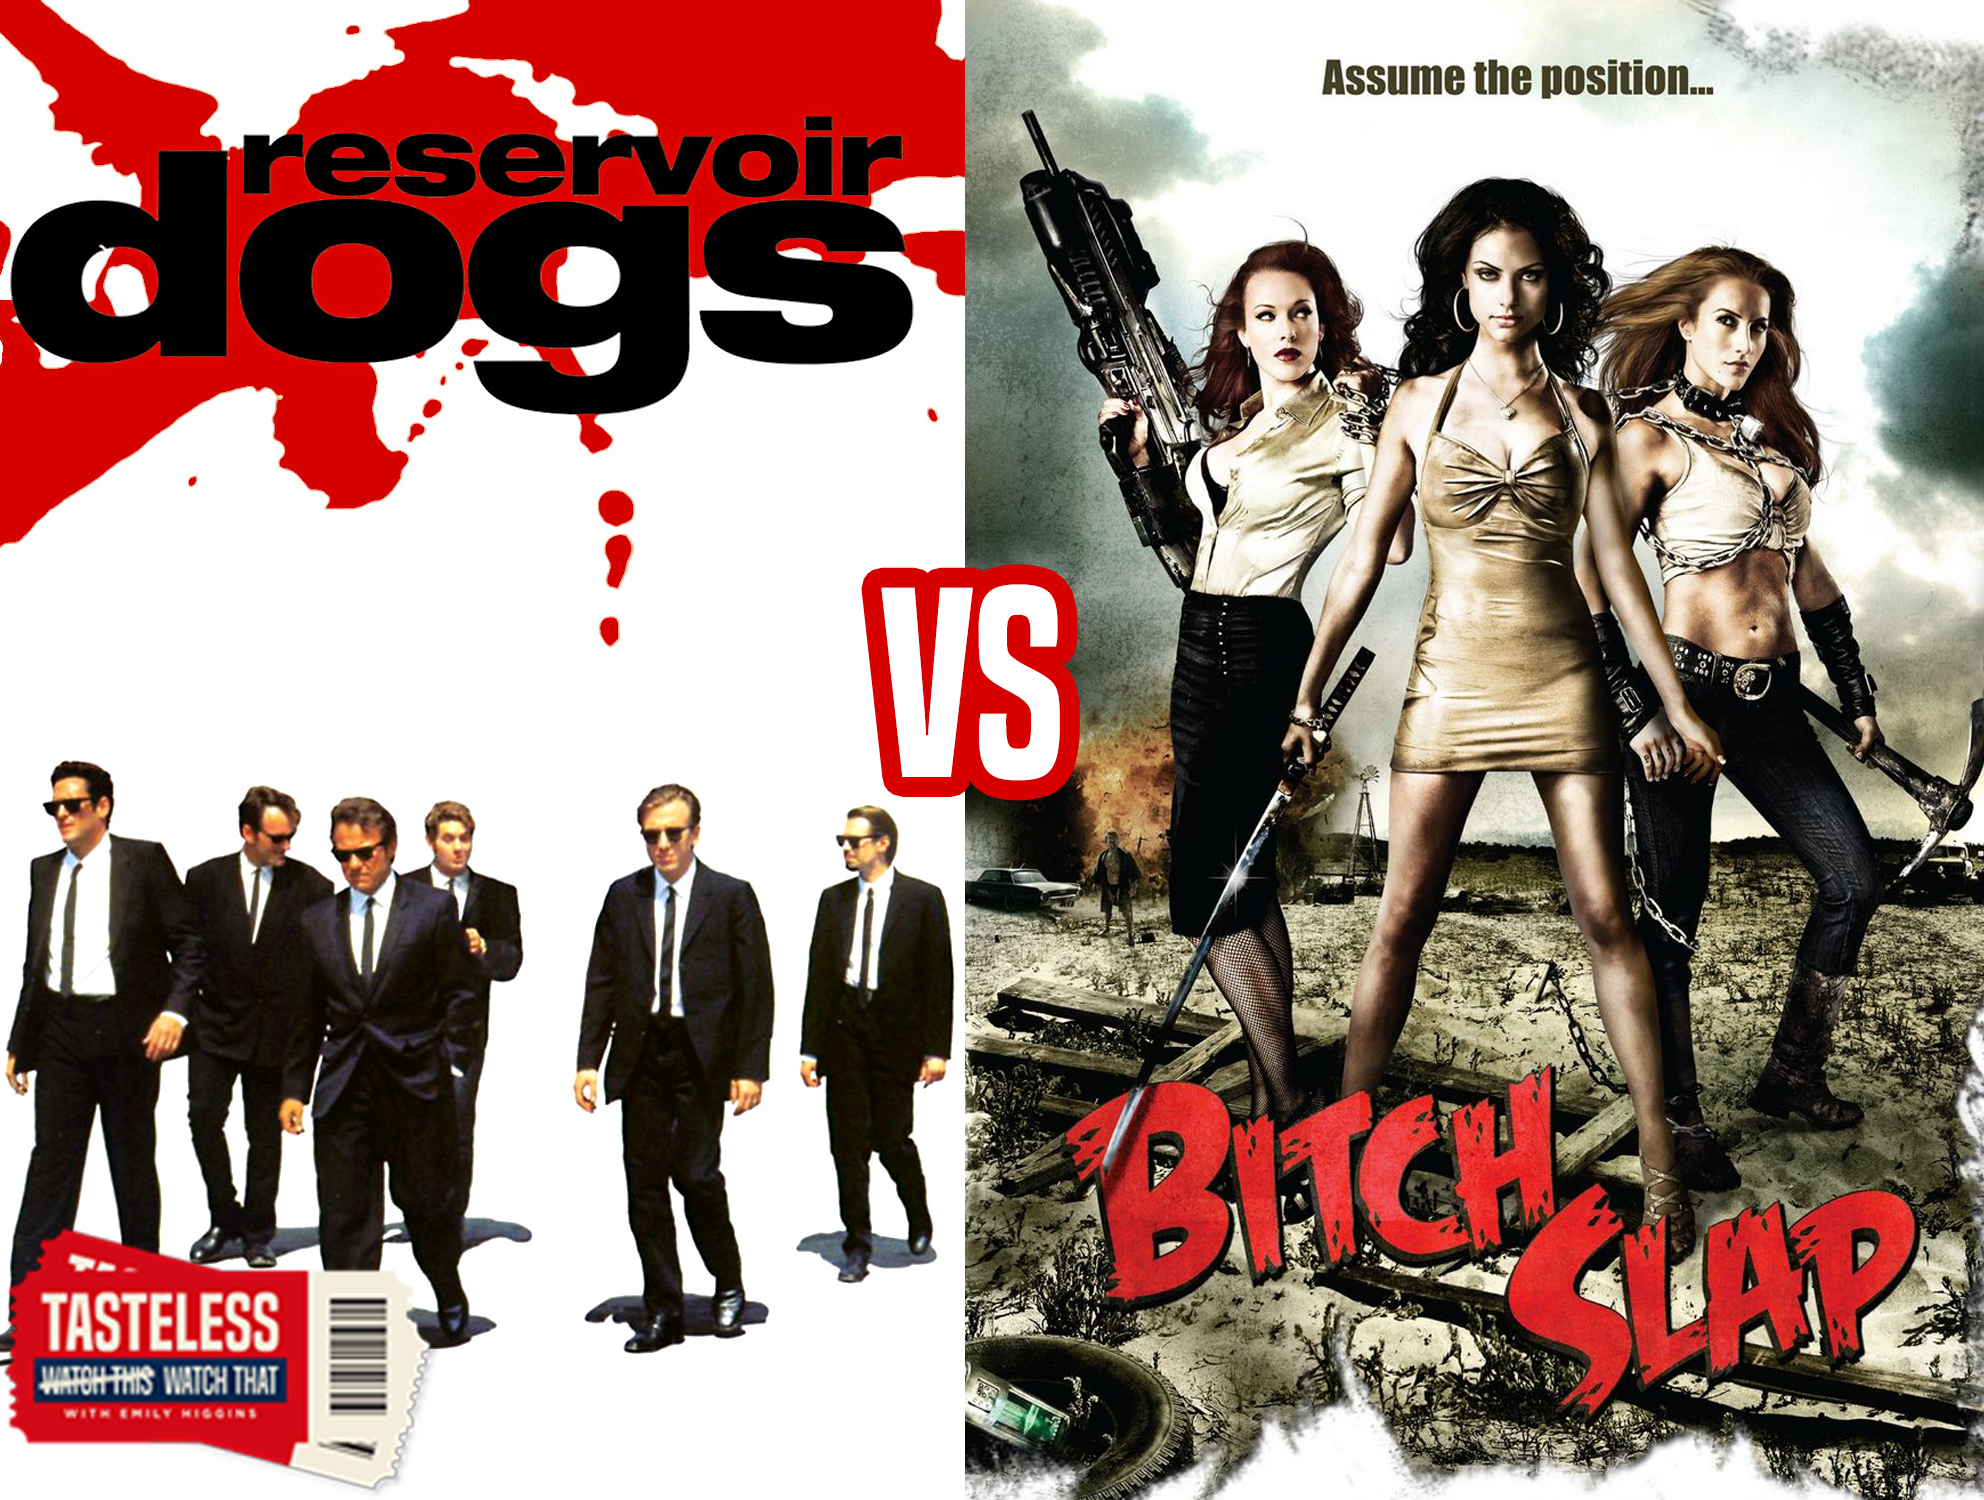 Reservoir Dogs vs Bitch Slap